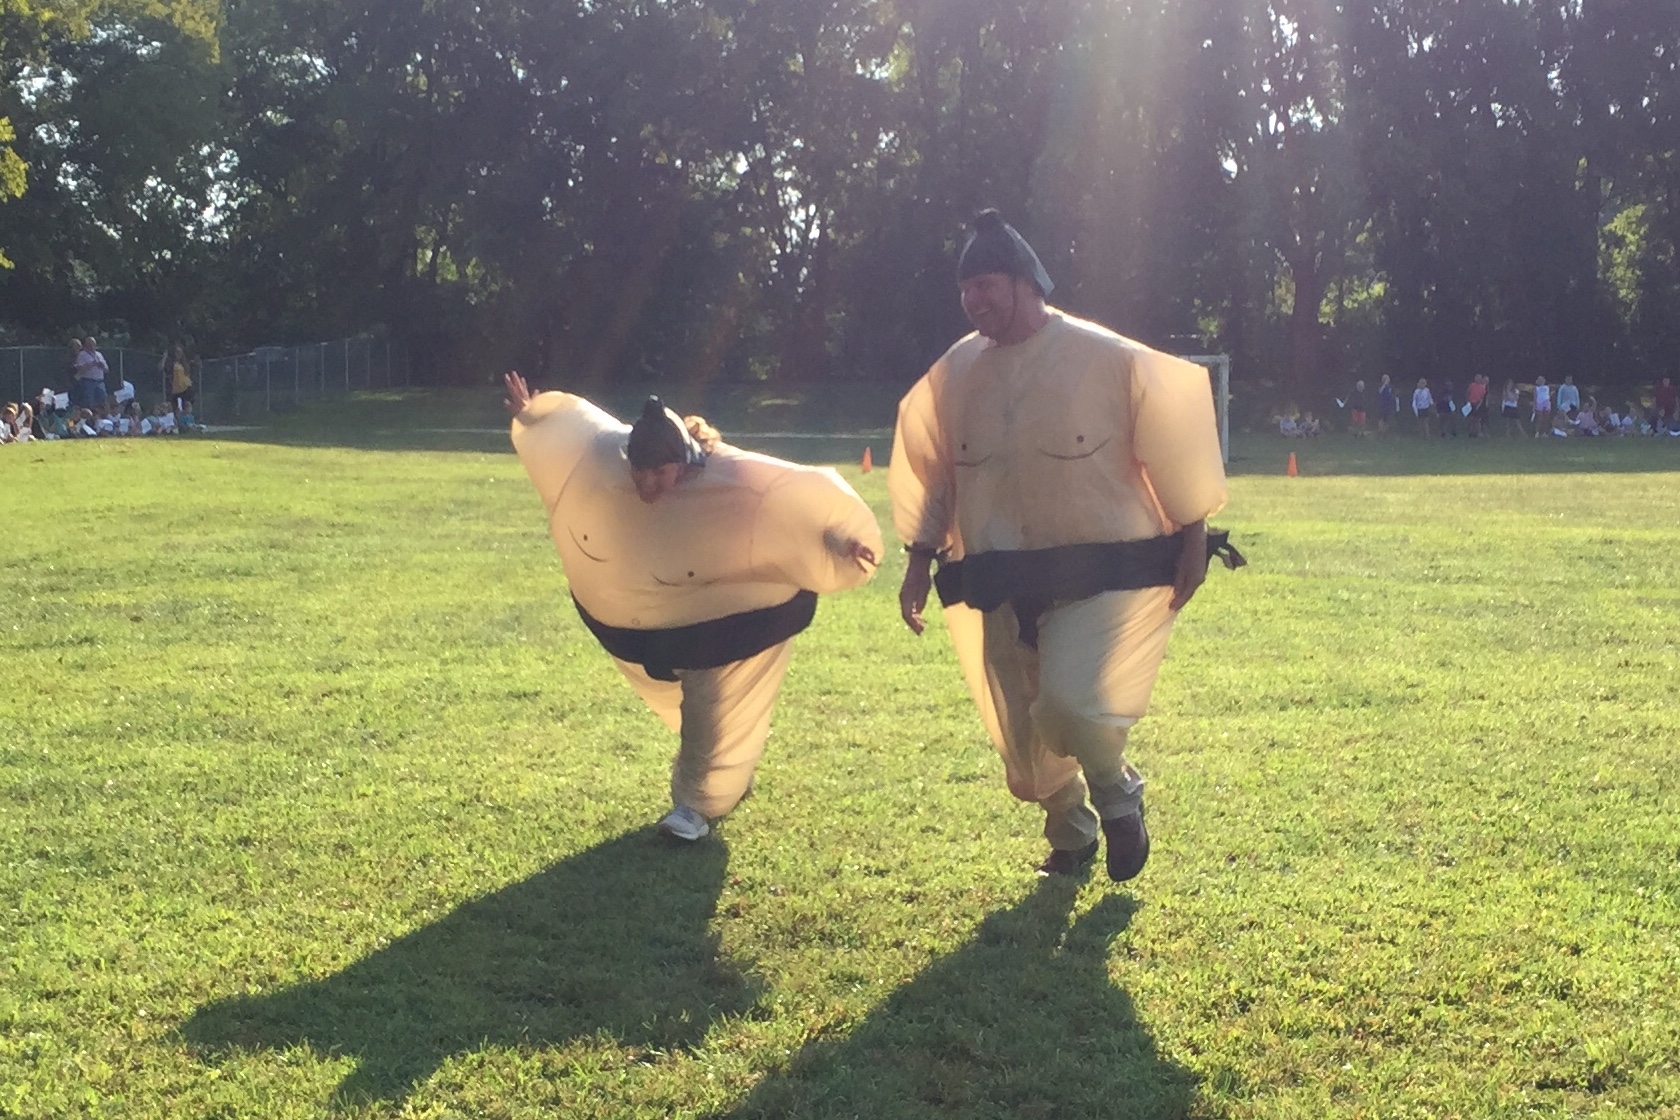 Mr. Taylor and Mrs. Holleman in Sumo suits racing down the soccer field